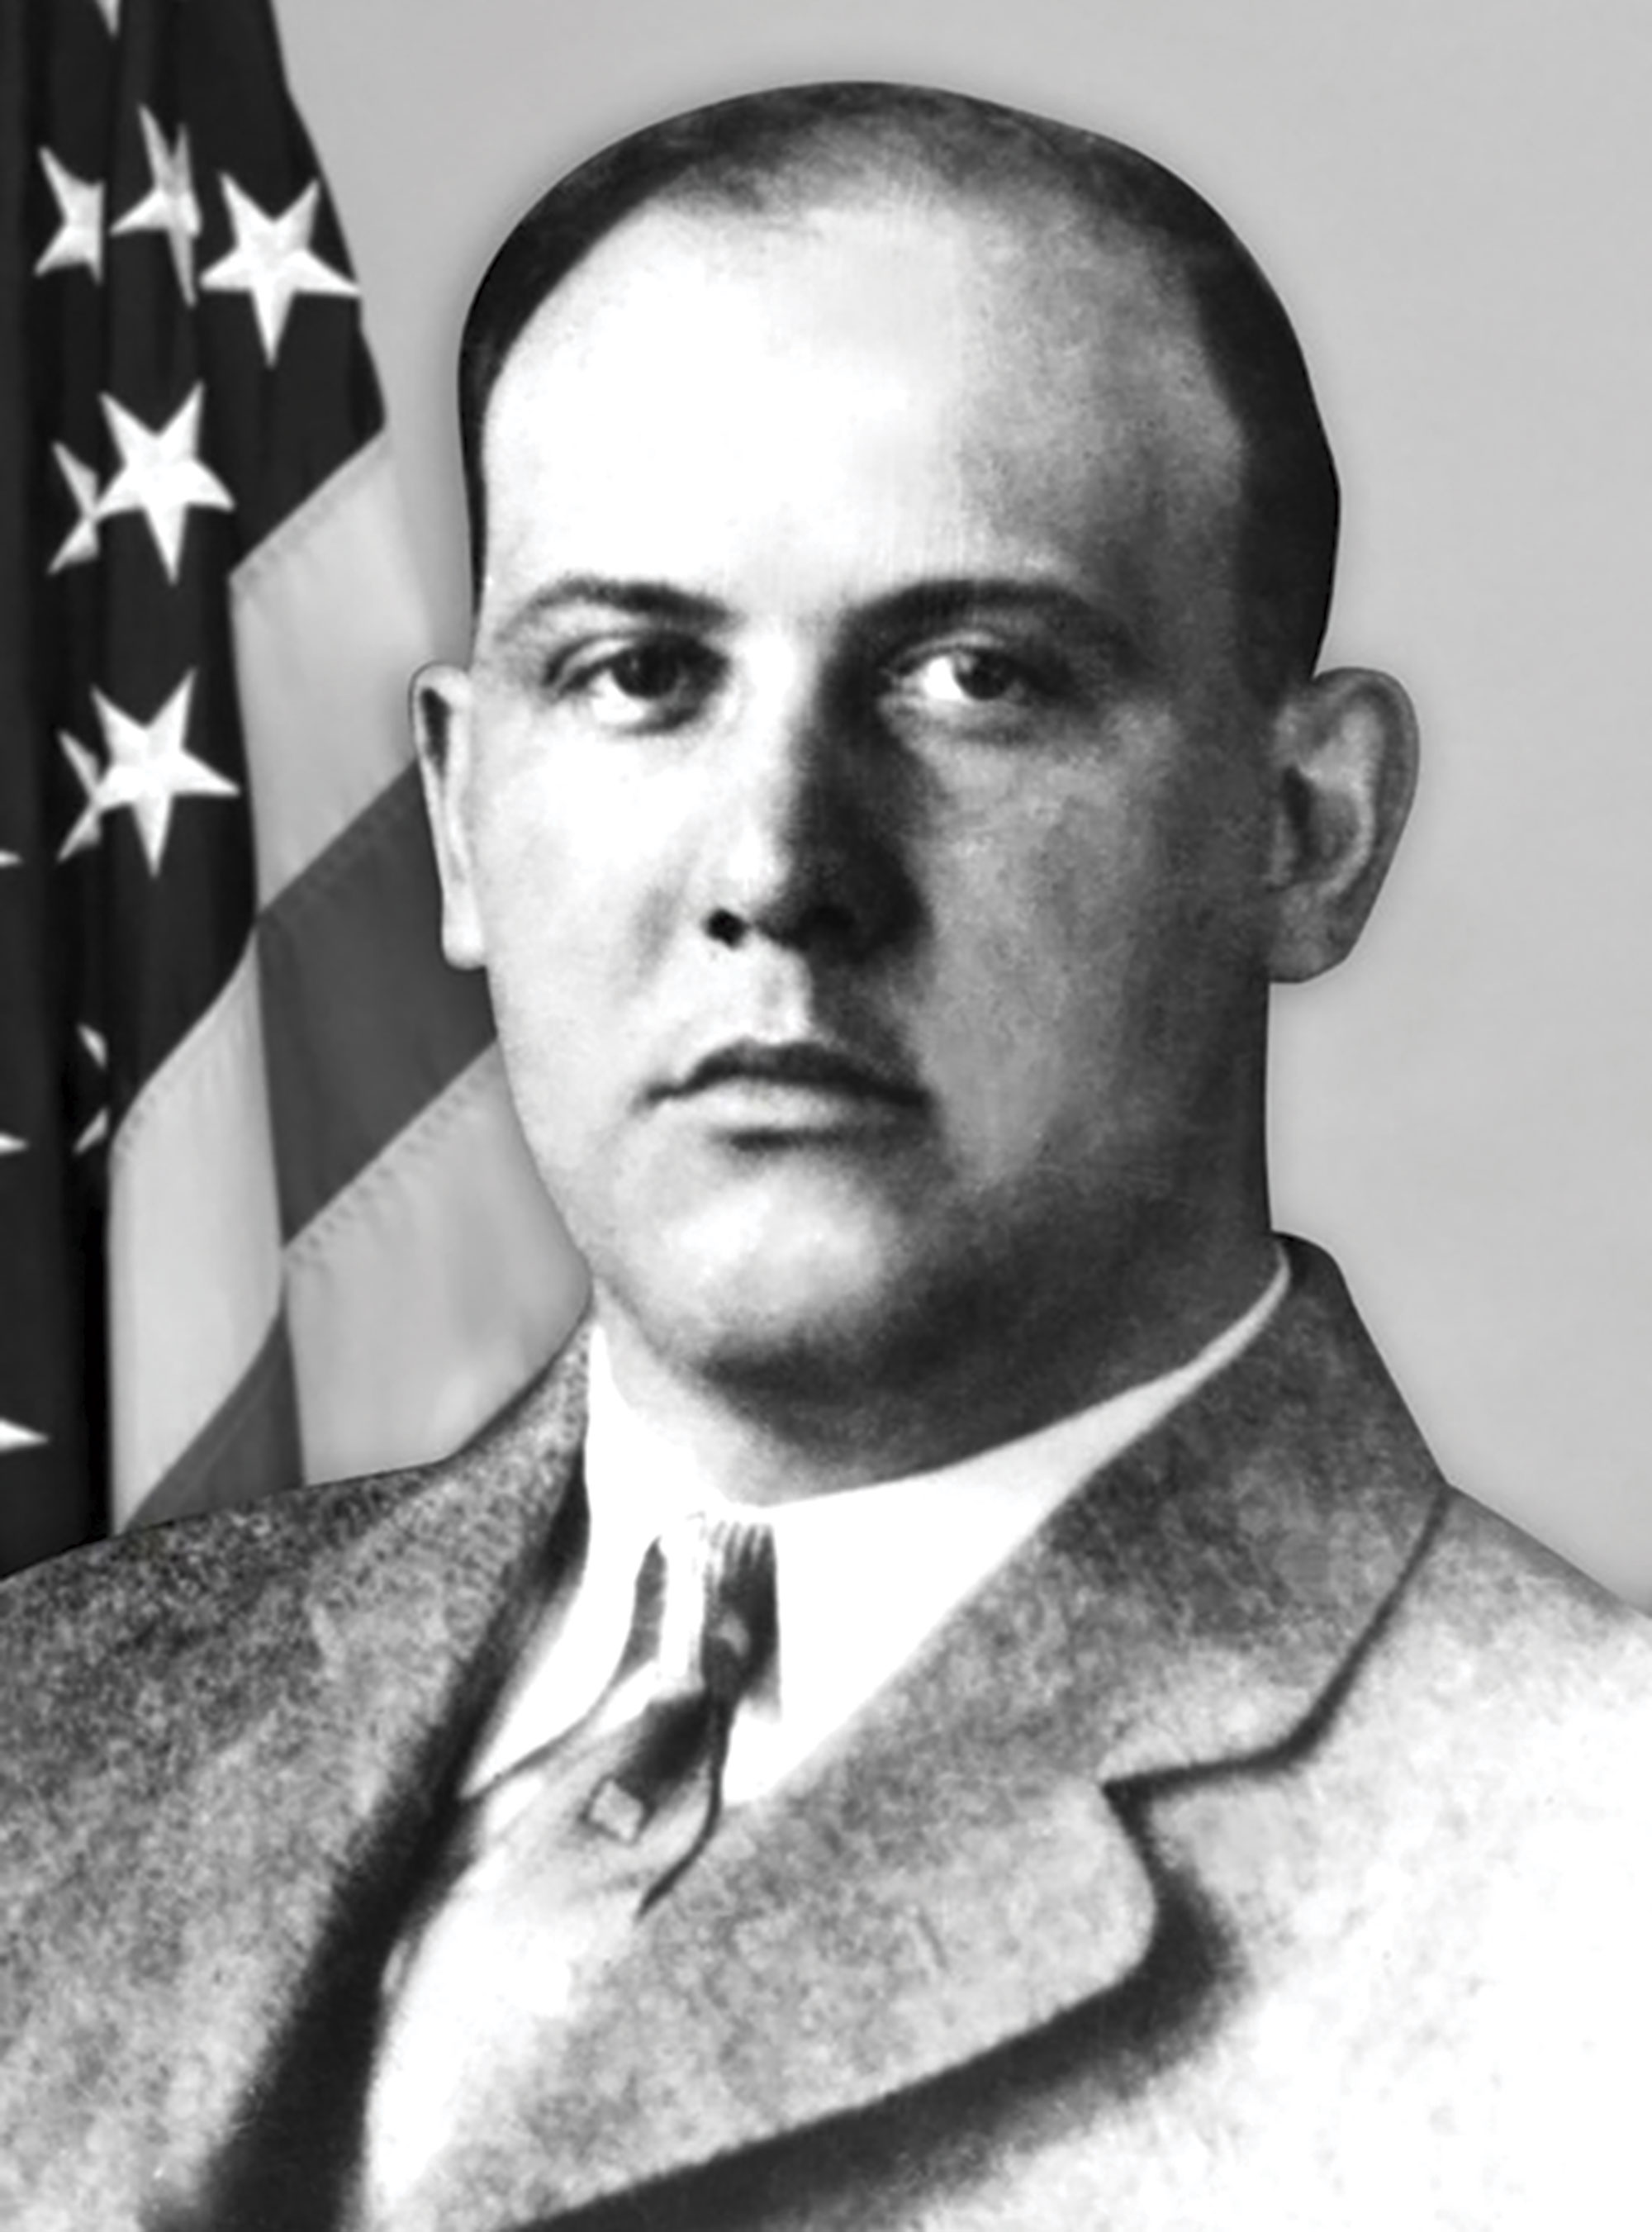 Paul E. Reynolds; Photo courtesy fbi.gov